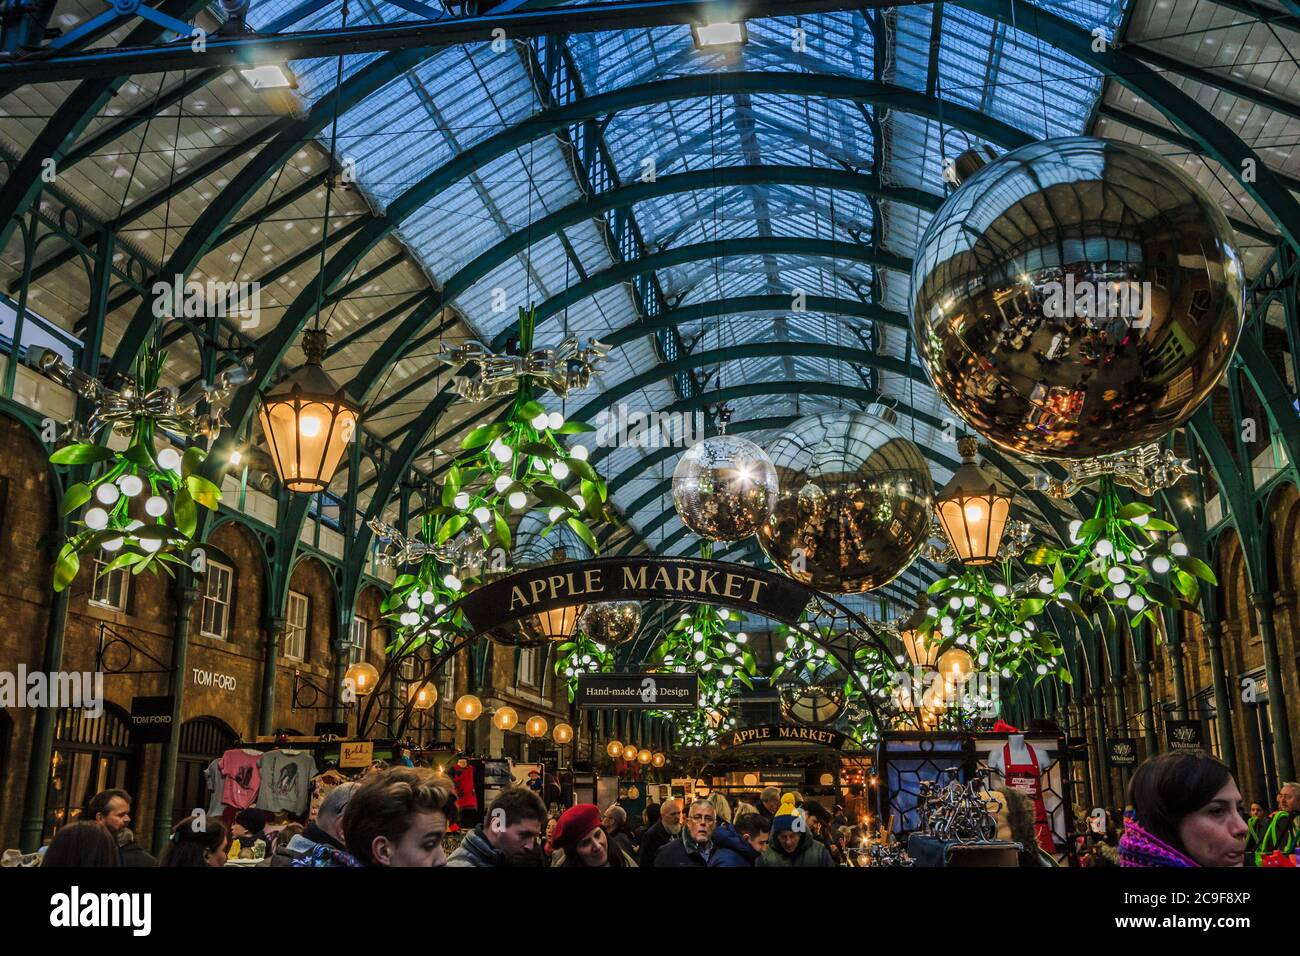 Covent Garden, London Apple Market decorated for Christmas with shoppers in the foreground Stock Photo